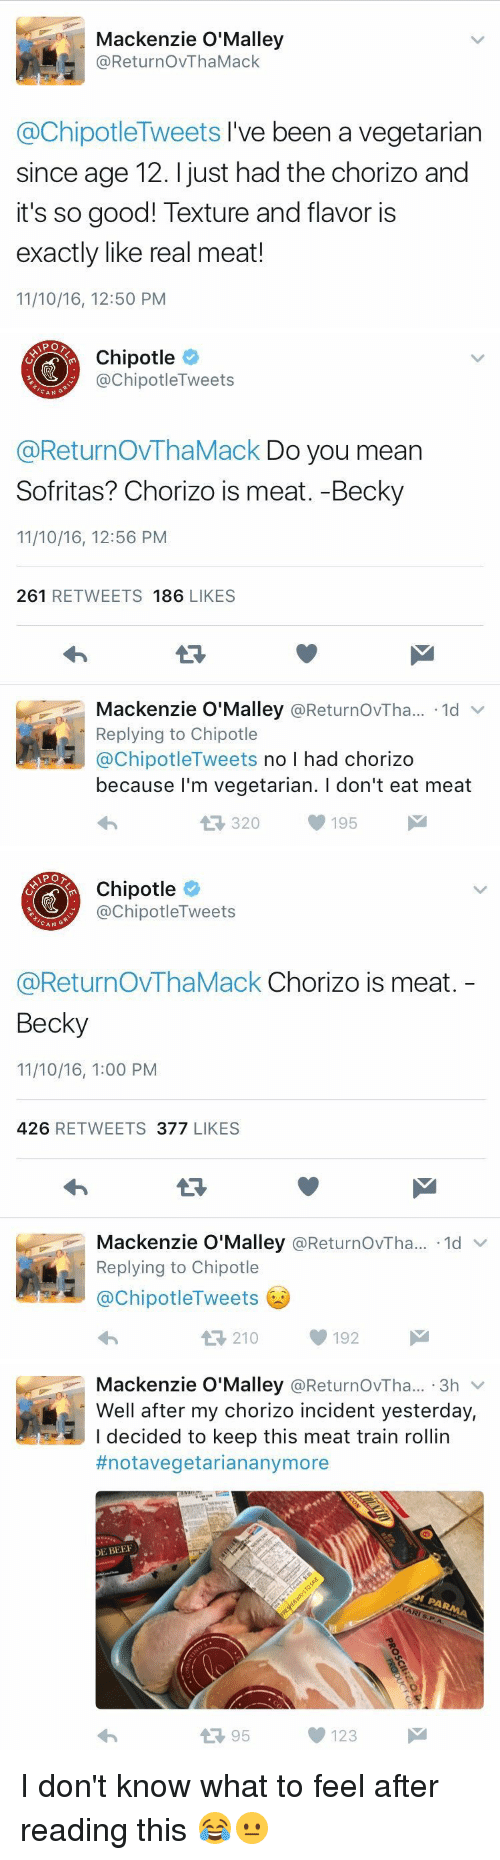 Beef, Funny, and Chorizo: Mackenzie O'Malley  @Retur no VThaMack  @ChipotleTweets I've been a vegetarian  since age 12. just had the chorizo and  it's so good! Texture and flavor is  exactly like real meat!  11/10/16, 12:50 PM   APO  Chipotle  nipotle Tweets  CAN  @ReturnovThaMack Do you mean  Sofritas? Chorizo is meat. -Becky  11/10/16, 12:56 PM  261  RETWEETS  186  LIKES  Mackenzie O'Malley  @ReturnovTha... 1d v  Replying to Chipotle  @Chipotle  Tweets  no l had chorizo  because I'm vegetarian. l don't eat meat  195  320   Chipotle  ChipotleTweets  CAN  G  @ReturnOVThaMack Chorizo is meat  Becky  11/10/16, 1:00 PM  426  RETWEETS  377  LIKES  Mackenzie O'Malley  @ReturnovTha... ld  v  Replying to Chipotle  @Chipotle Tweets  t 210 192   Mackenzie O'Malley  @ReturnovTha... 3h  v  Well after my chorizo incident yesterday,  I decided to keep this meat train rollin  #notavegetarian anymore  DE BEEF  123  95 I don't know what to feel after reading this 😂😐